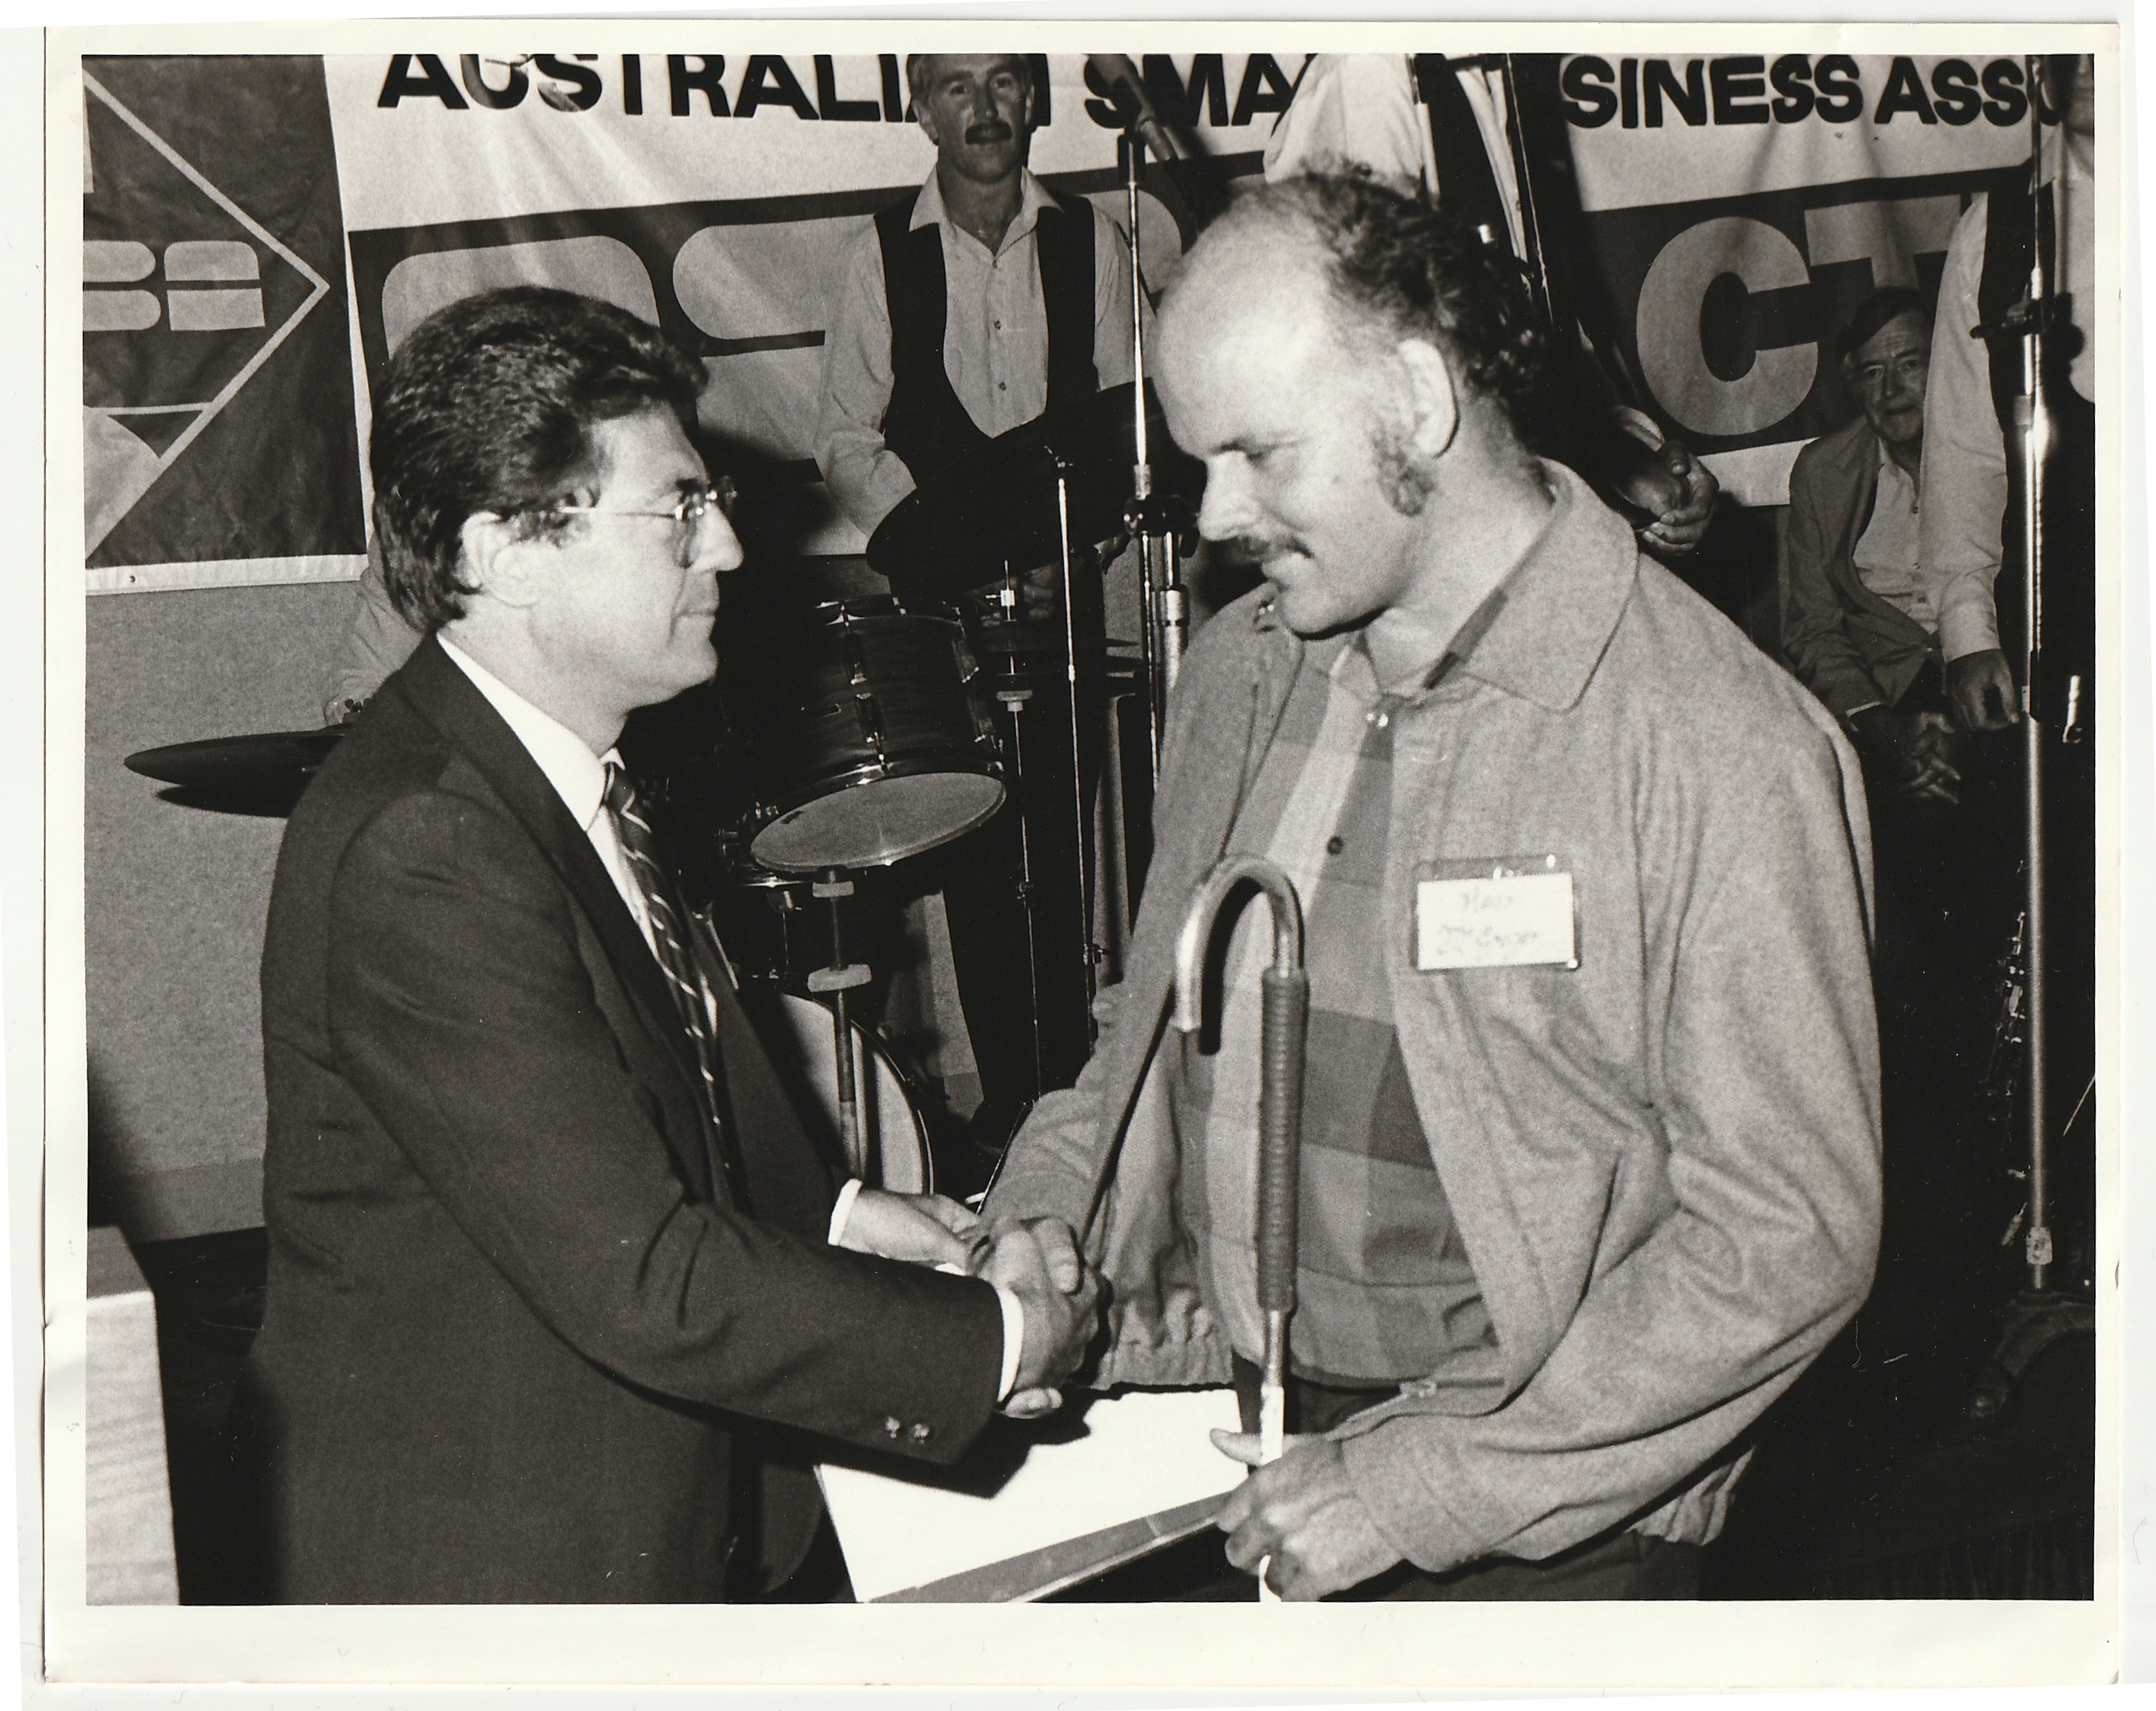 Ross receiving business award (Sydney)